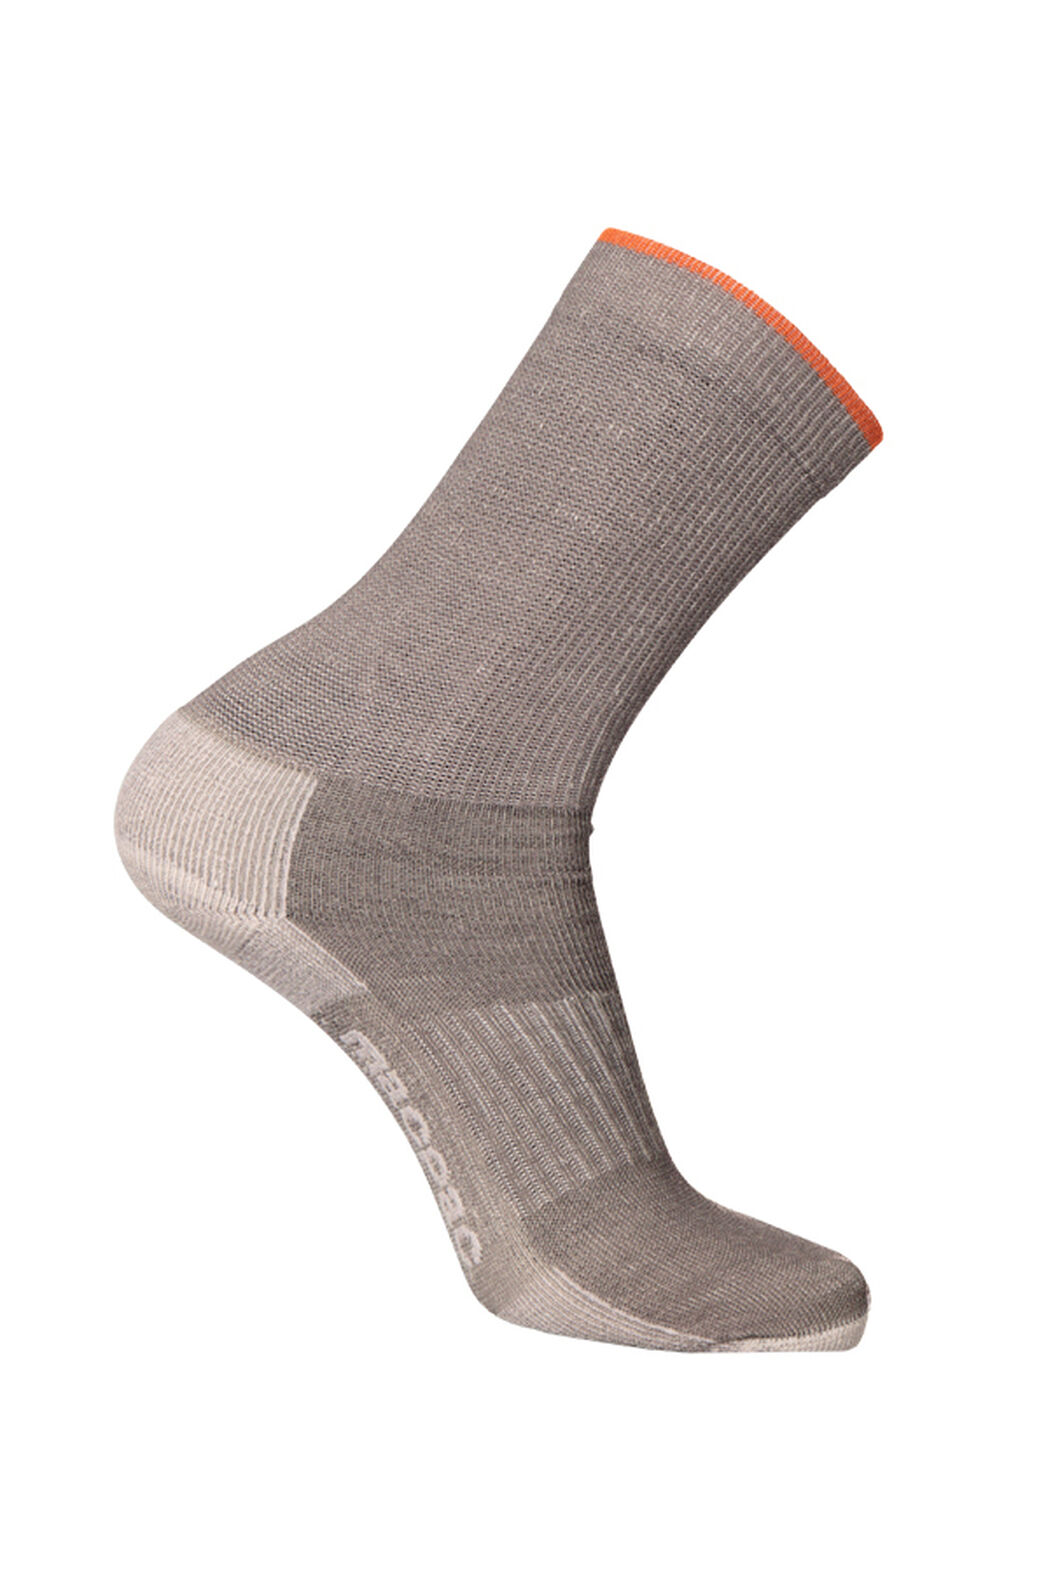 Macpac Light Hiker Socks, Anthracite, hi-res